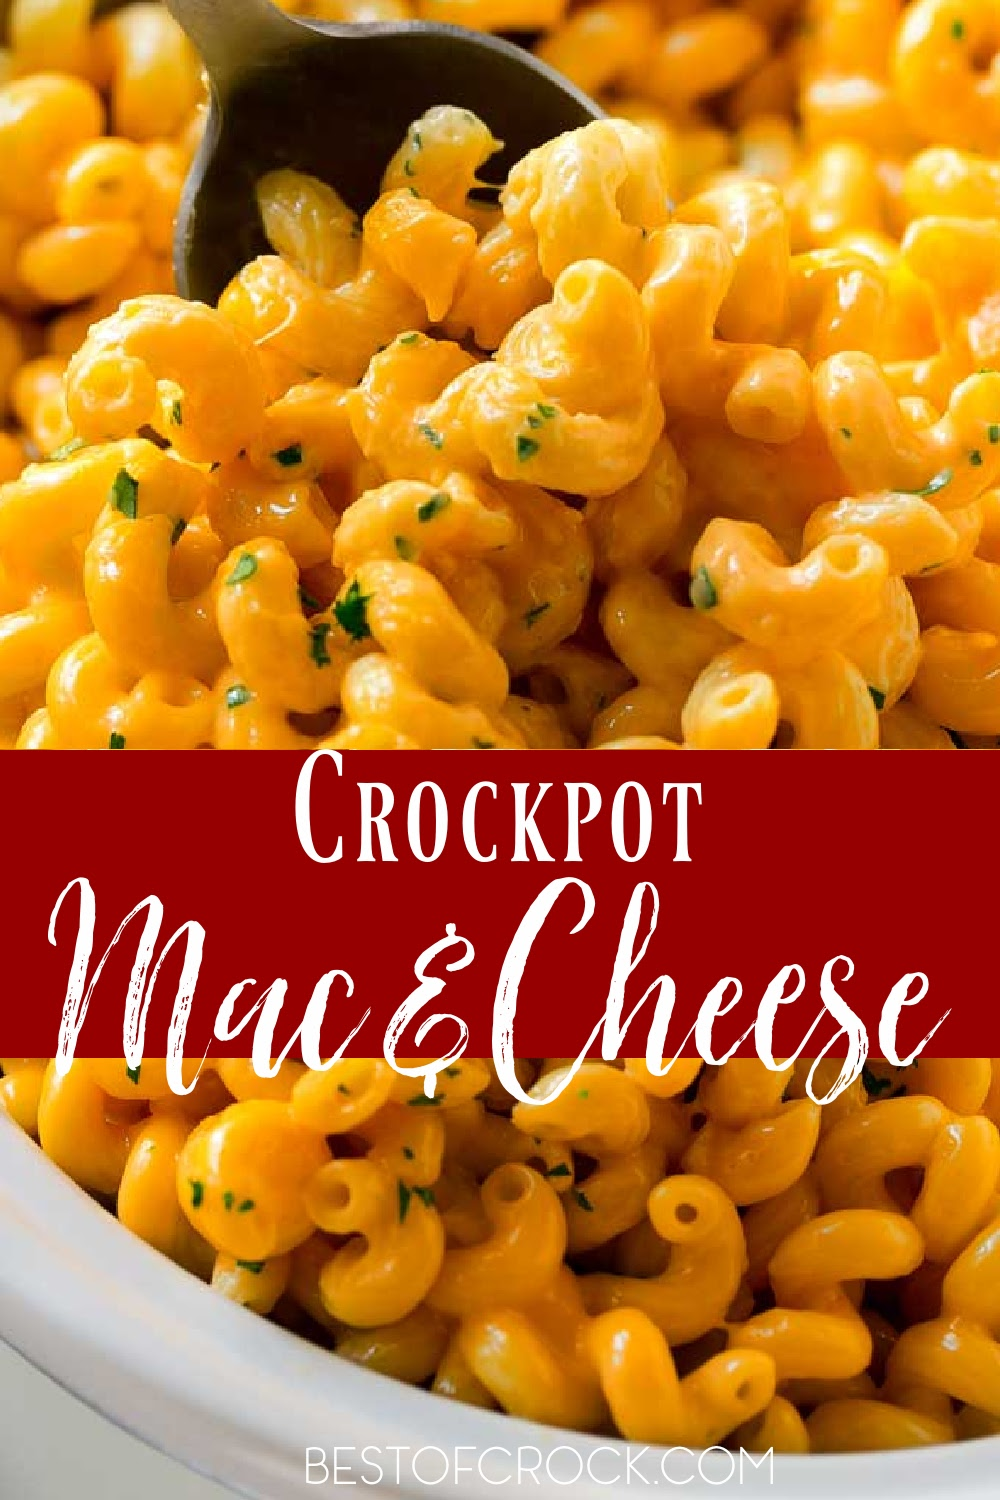 The best Crock Pot mac and cheese recipes are easy to make and any serious lover of crock pot recipes is sure to enjoy them. Crockpot Mac and Cheese Recipes | Easy Dinner Recipes | Make Ahead Lunch Recipes | Slow Cooker Macaroni and Cheese | Slow Cooker Dinner Recipes | Slow Cooker Side Dish Recipes | Recipes for Kids #crockpot #macandcheese via @bestofcrock